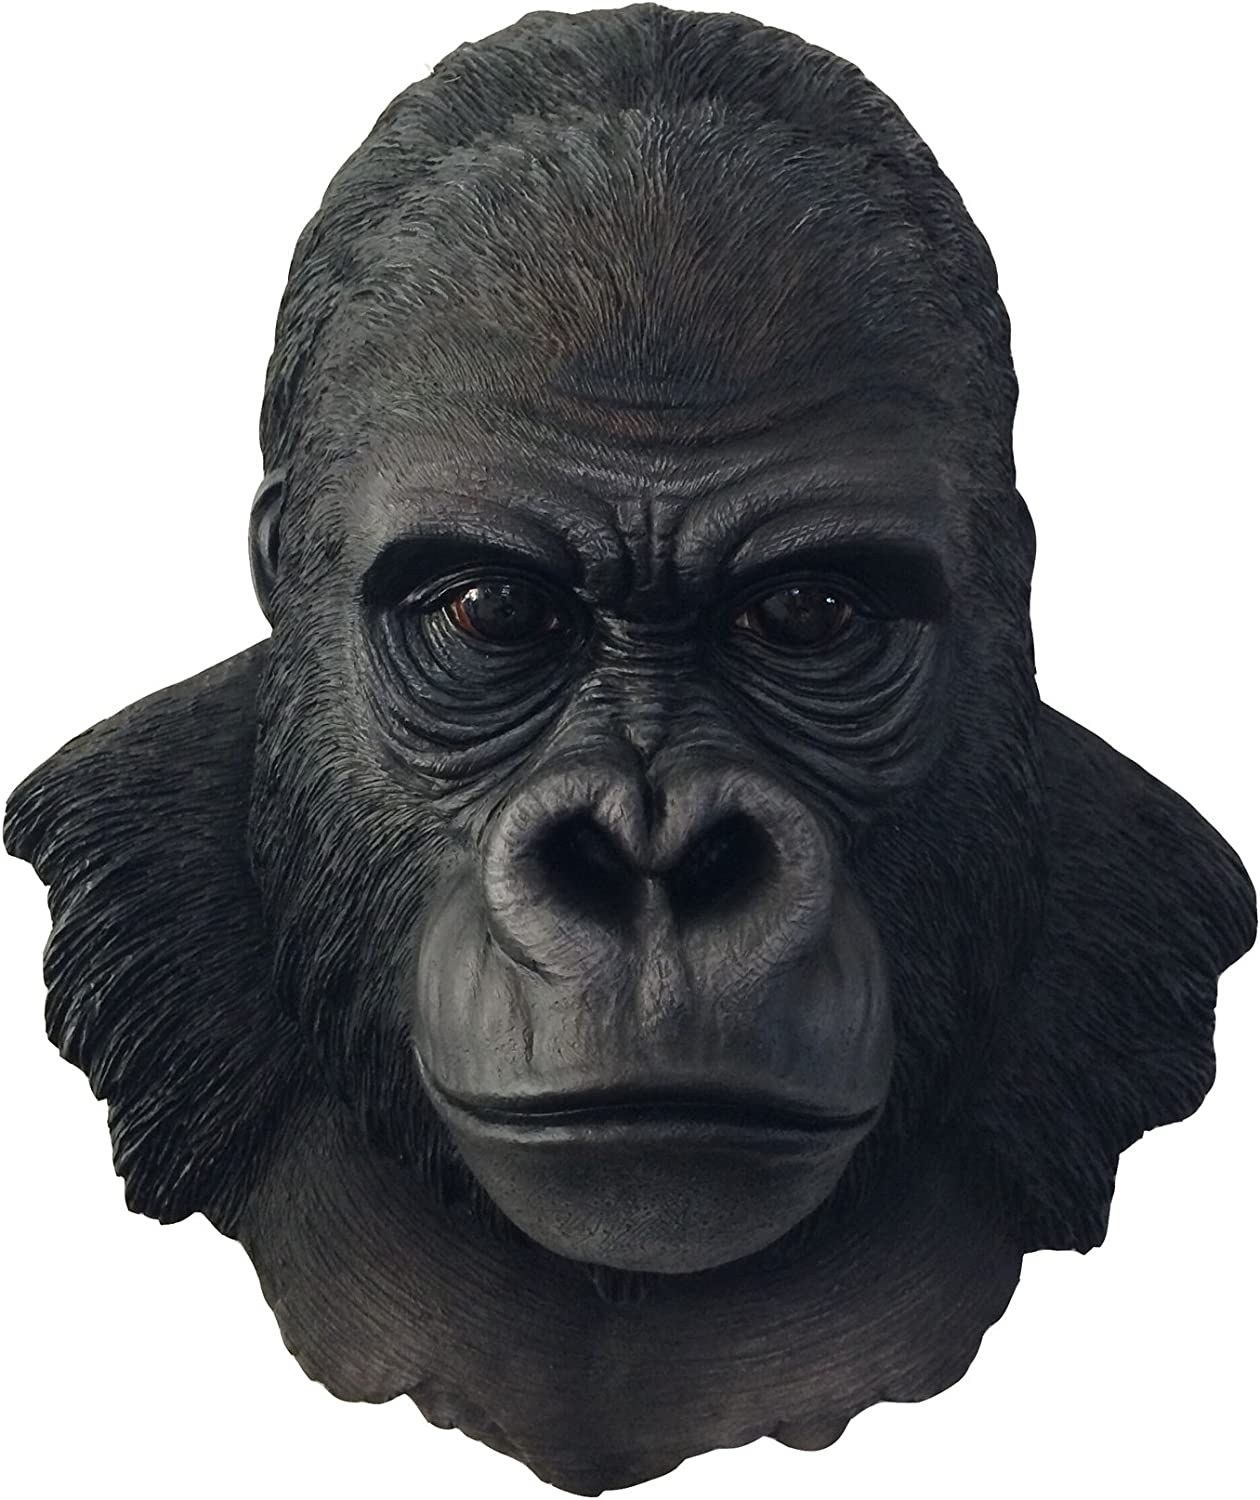 Deluxe Wildlife Fake Taxidermy Wall Mount Gorilla DWK By High material